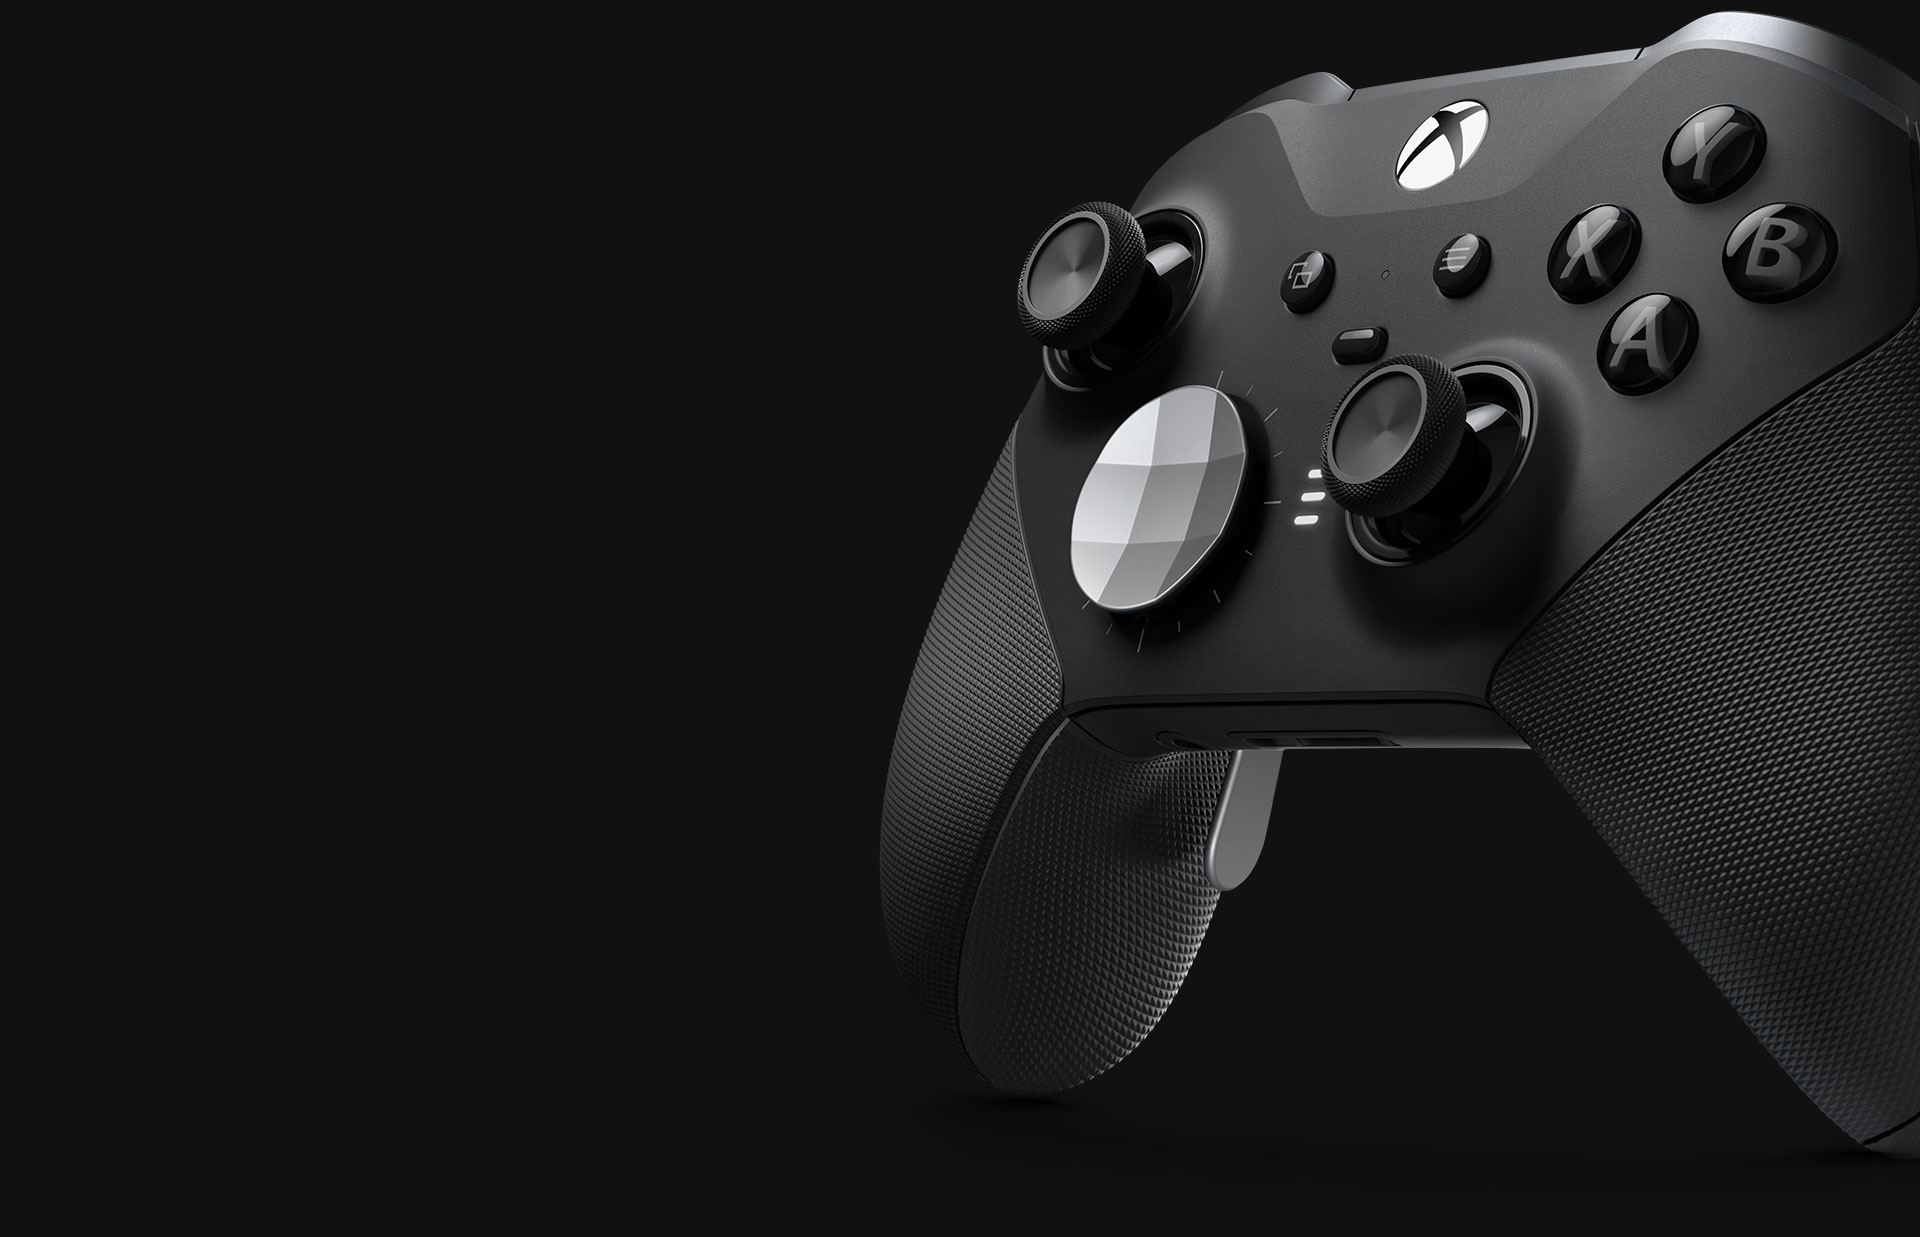 Vista angolare in primo piano del Controller Wireless Elite per Xbox Series 2